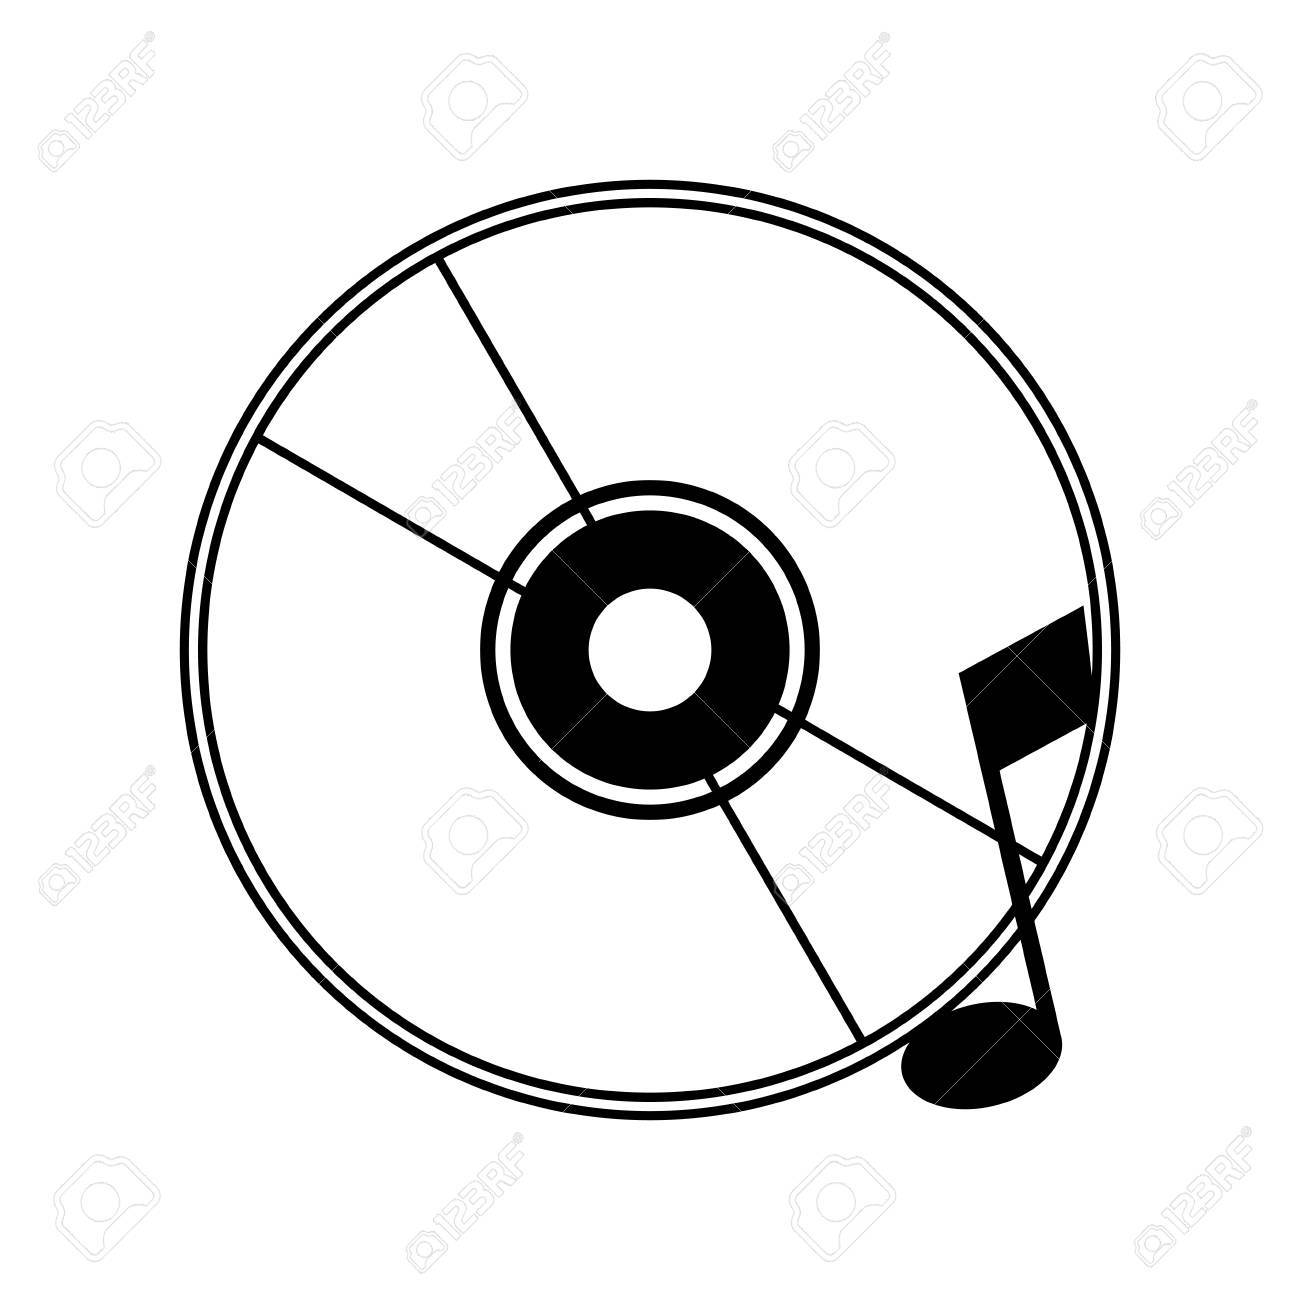 cd with quaver or eight note music icon image vector illustration rh 123rf com cd victoria tamps cd victoria tamaulipas